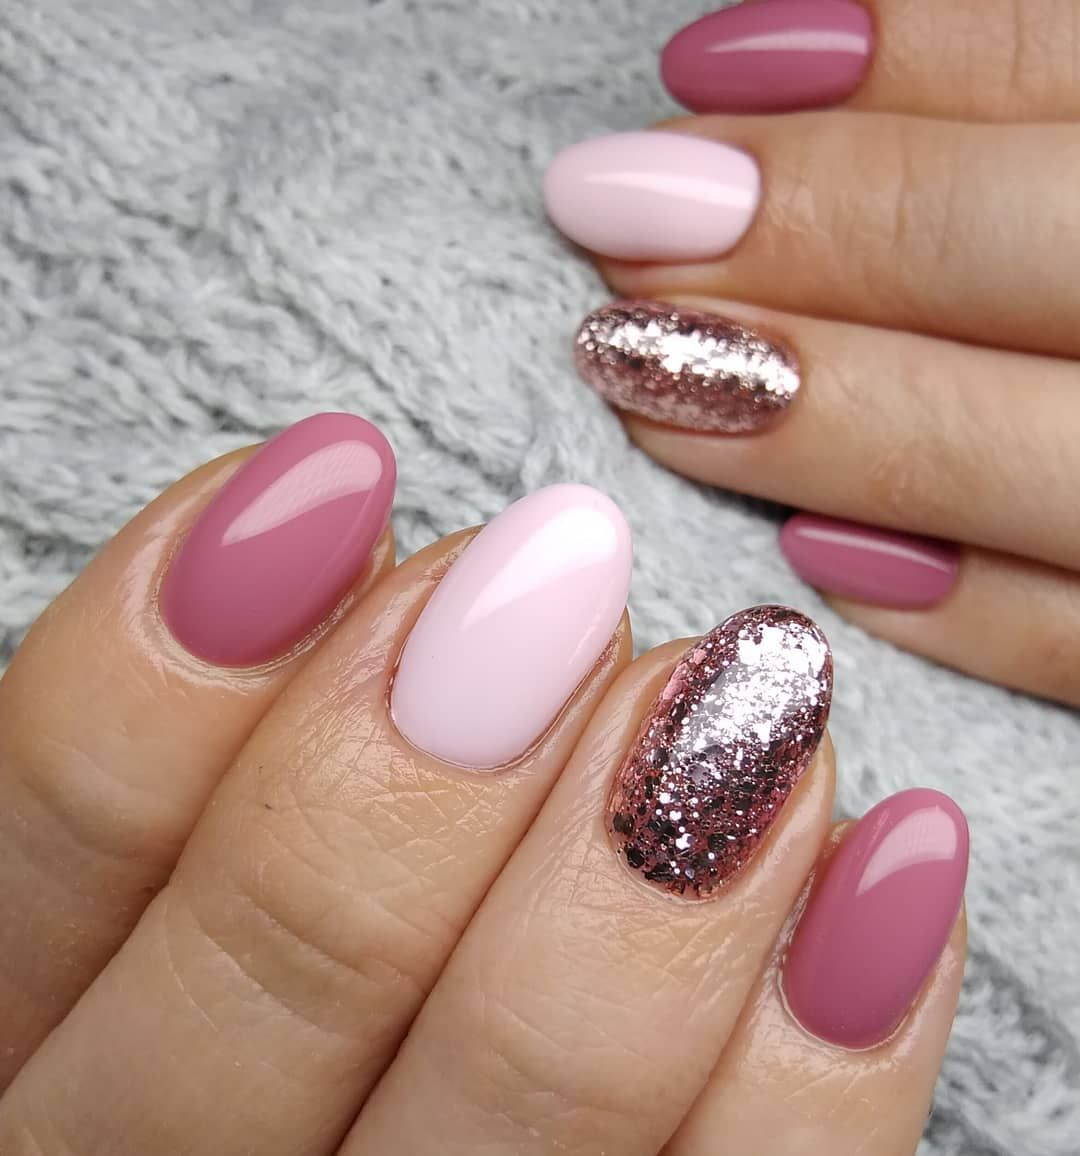 Pin By Sarah Kk On Nails In 2020 Umele Nehty Design Nehtu Gelove Nehty